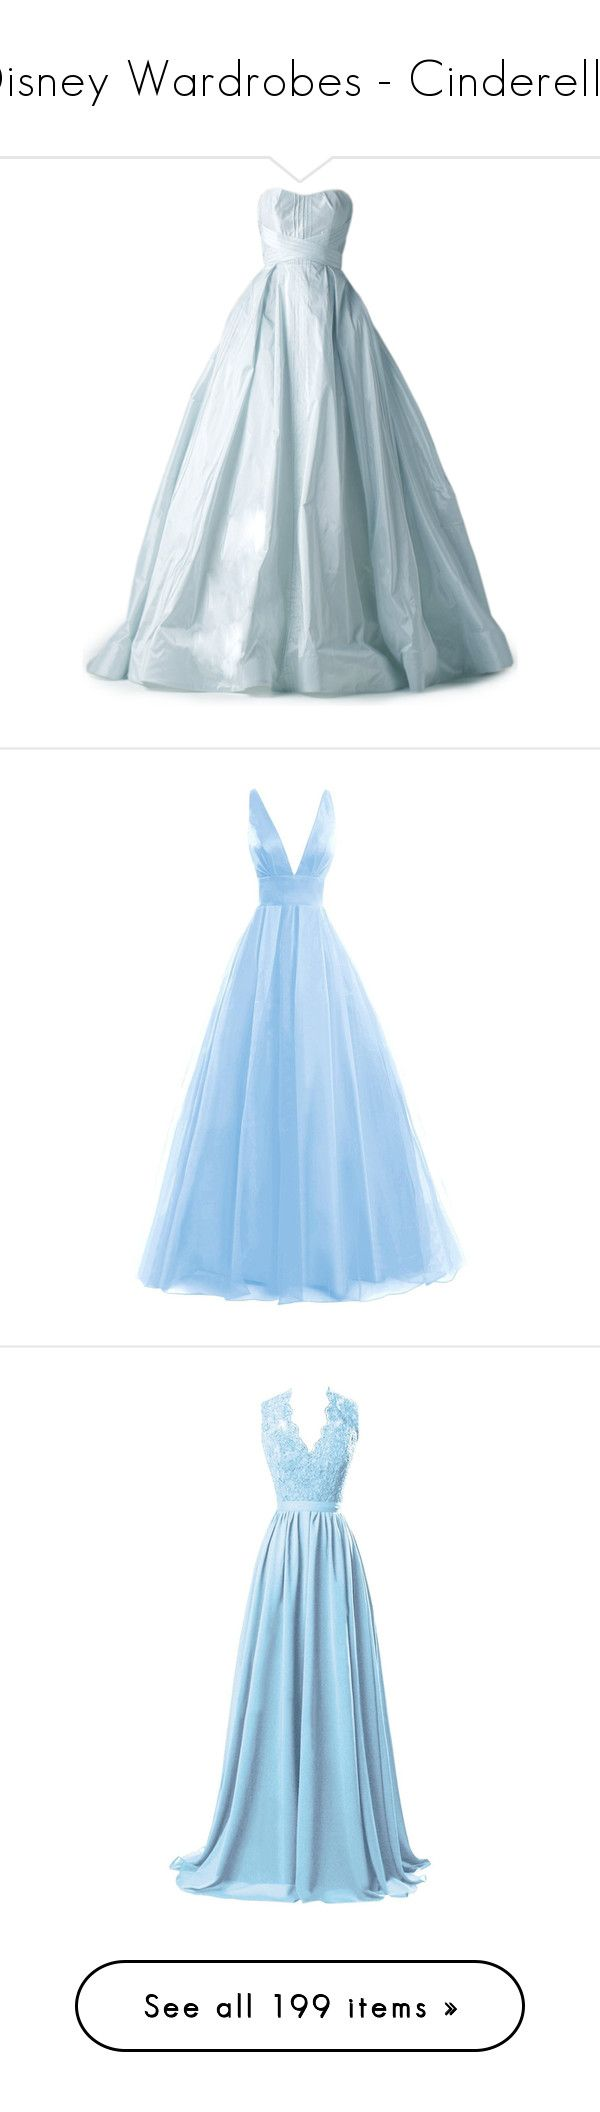 """""""Disney Wardrobes - Cinderella"""" by stinze on Polyvore featuring dresses, gowns, long dresses, satinee, blue color dress, long blue dress, blue dresses, long blue evening dress, blue gown and gown"""